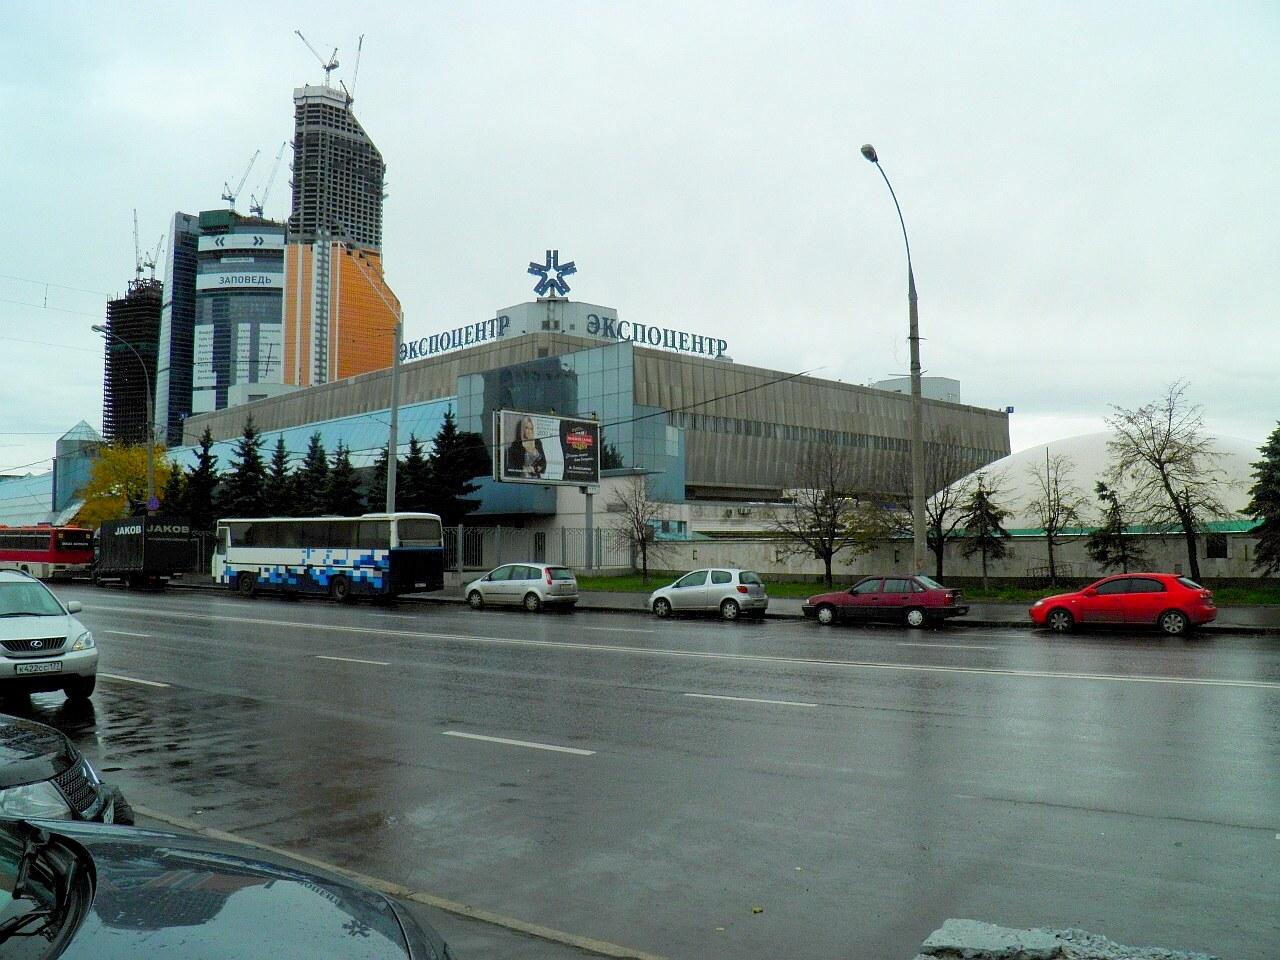 Moscow - Vladikavkaz: road of contrasts